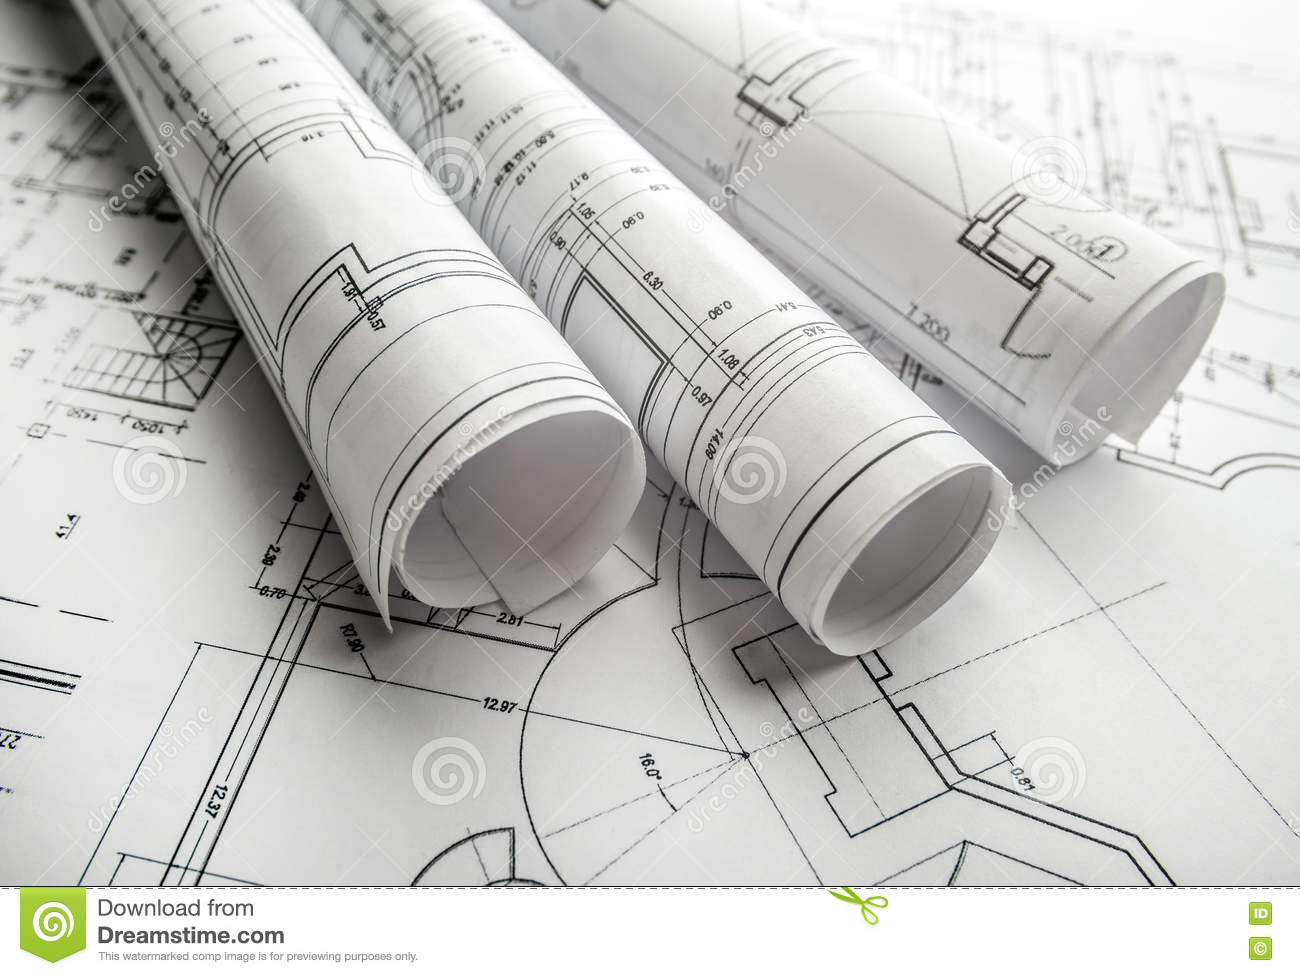 Architecturaal project